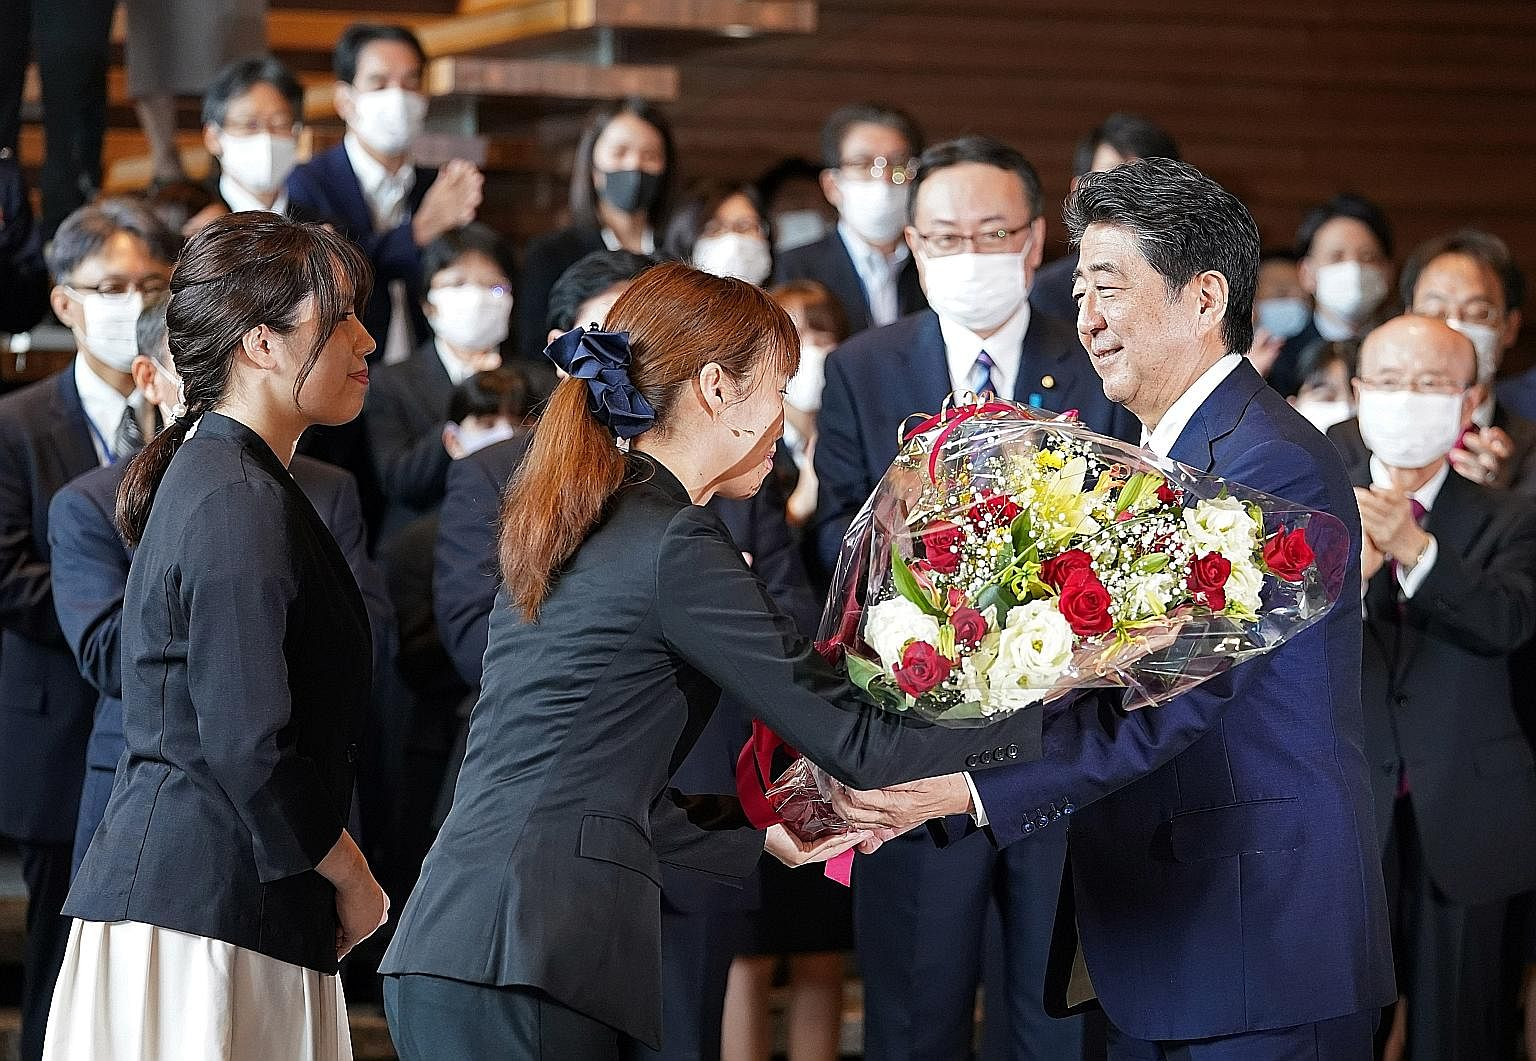 Mr Shinzo Abe, Japan's longest-serving leader with 3,188 days at the helm, called time on his tenure yesterday, receiving a bouquet and a poignant send-off upon his departure from the prime minister's official residence in Tokyo. Mr Yoshihide Suga (c